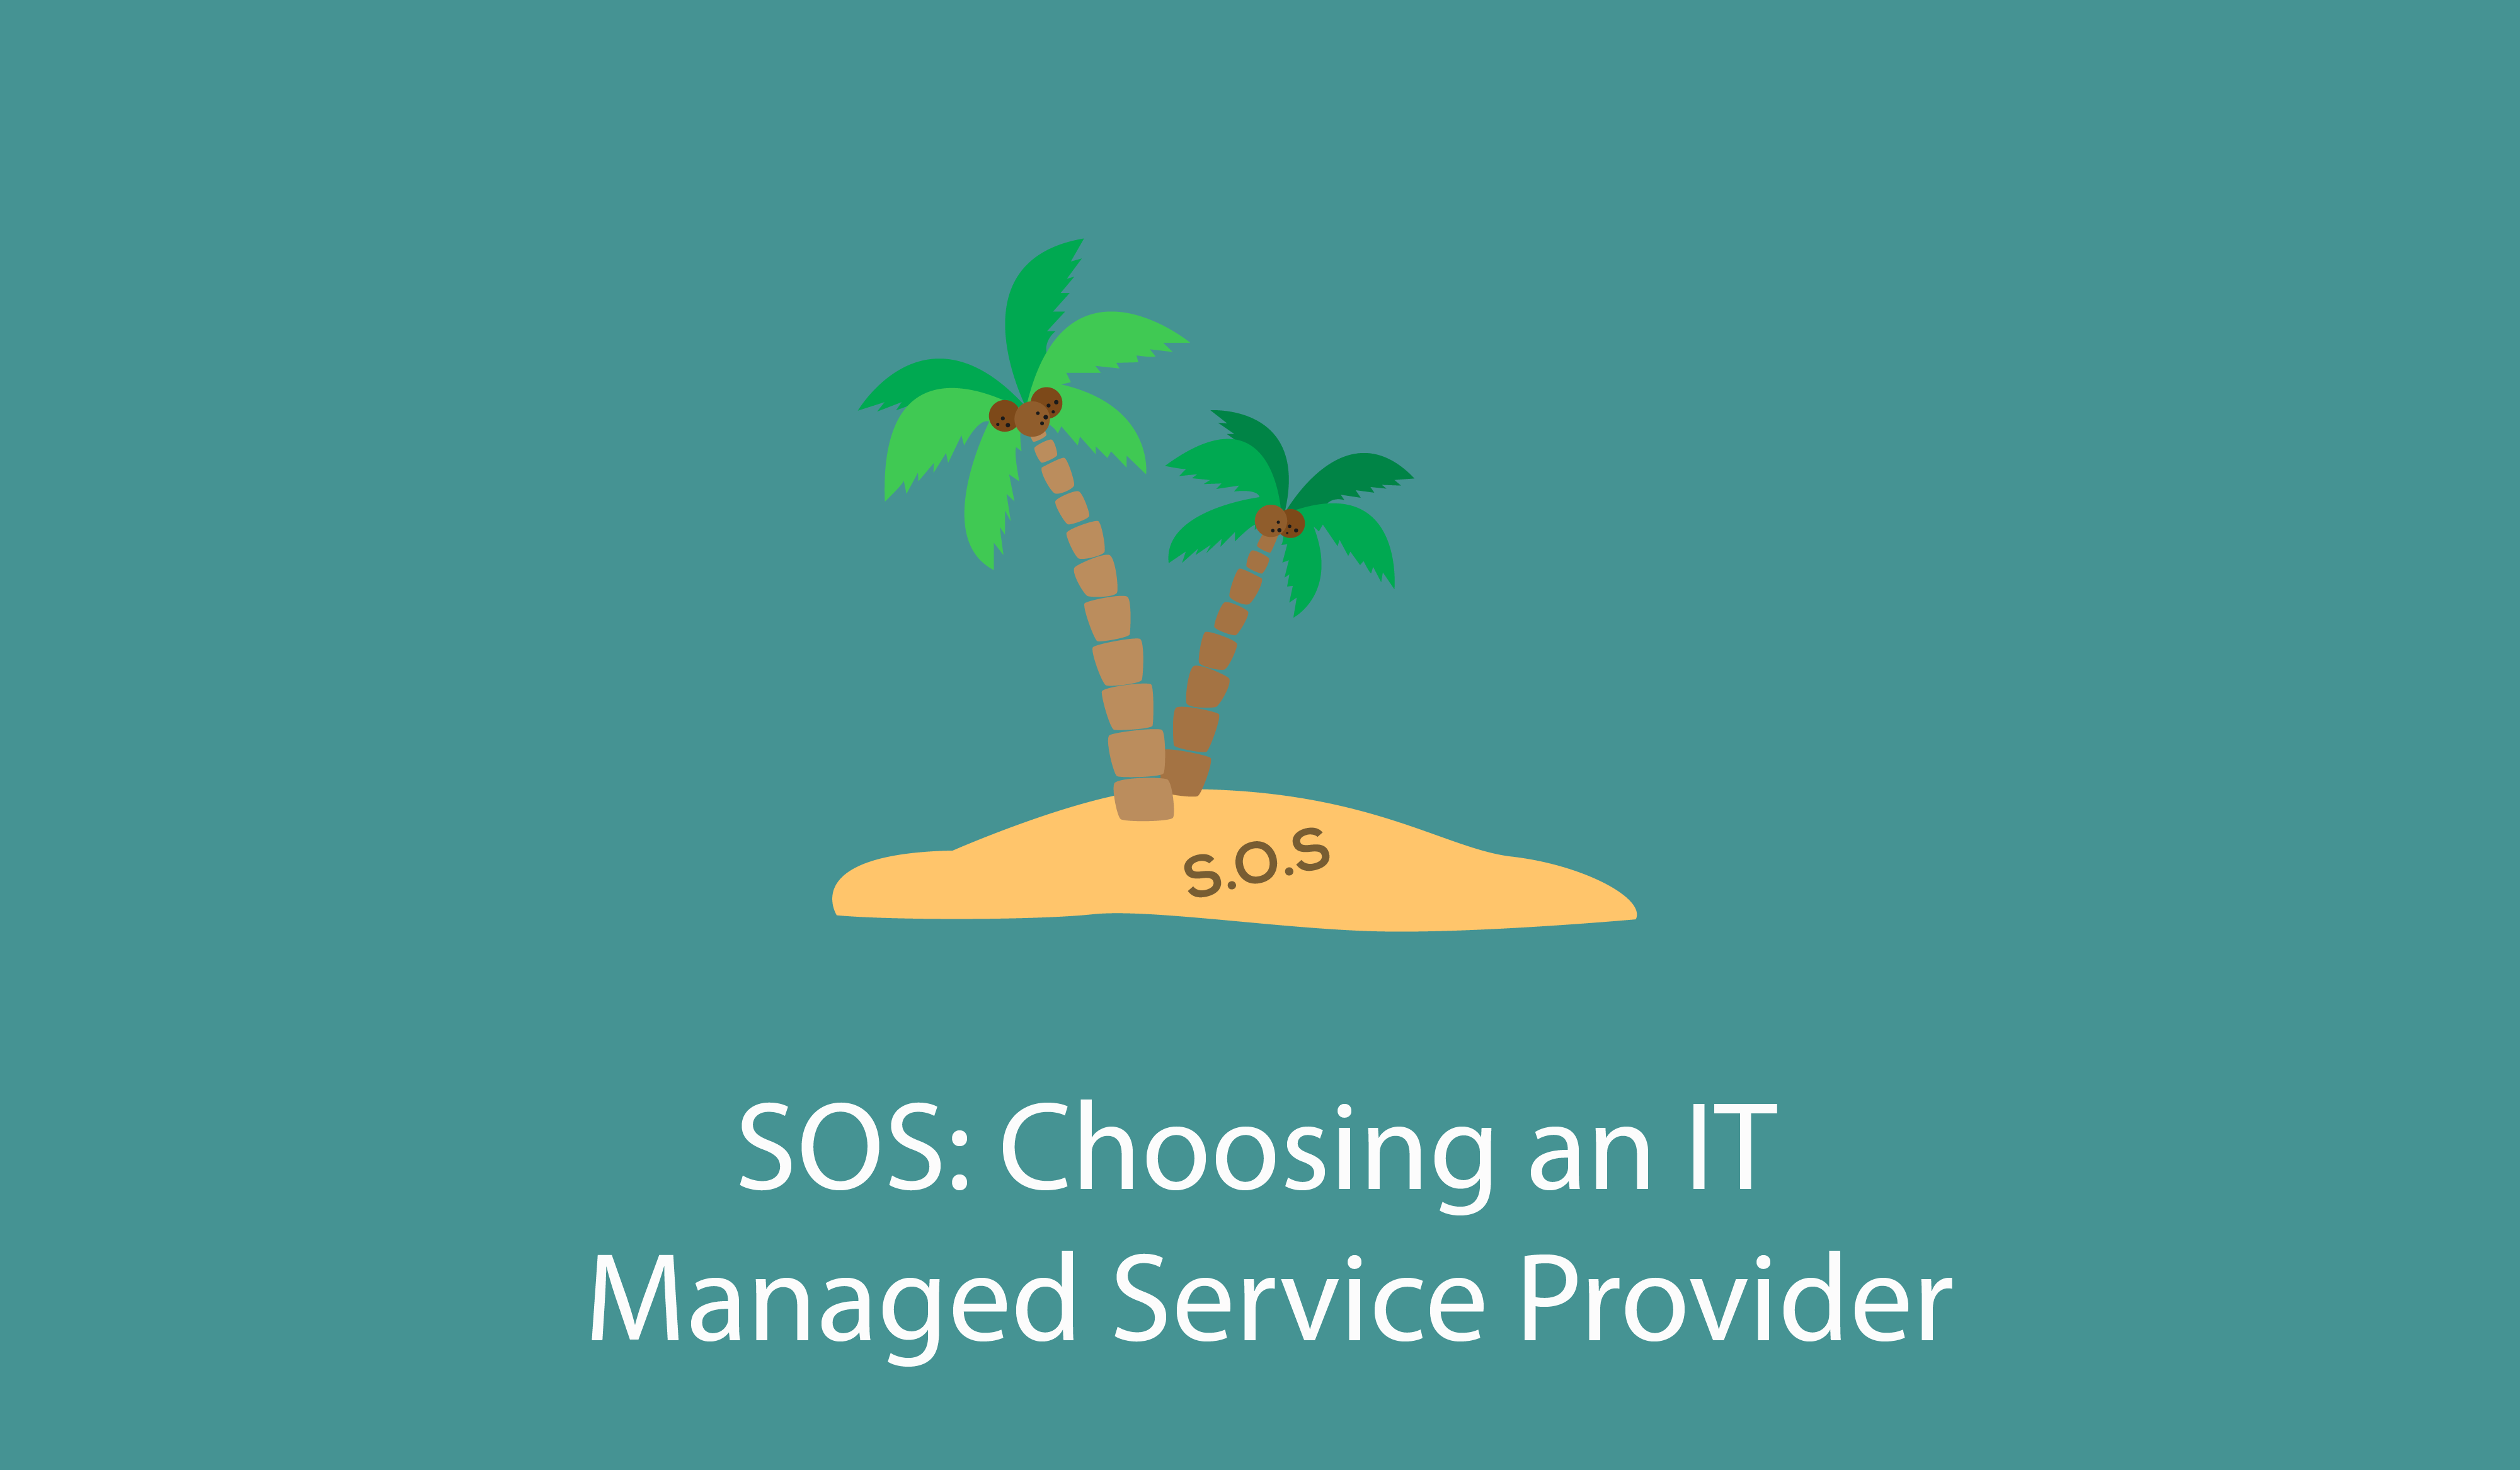 SOS:Choosing an IT Managed Service Provider